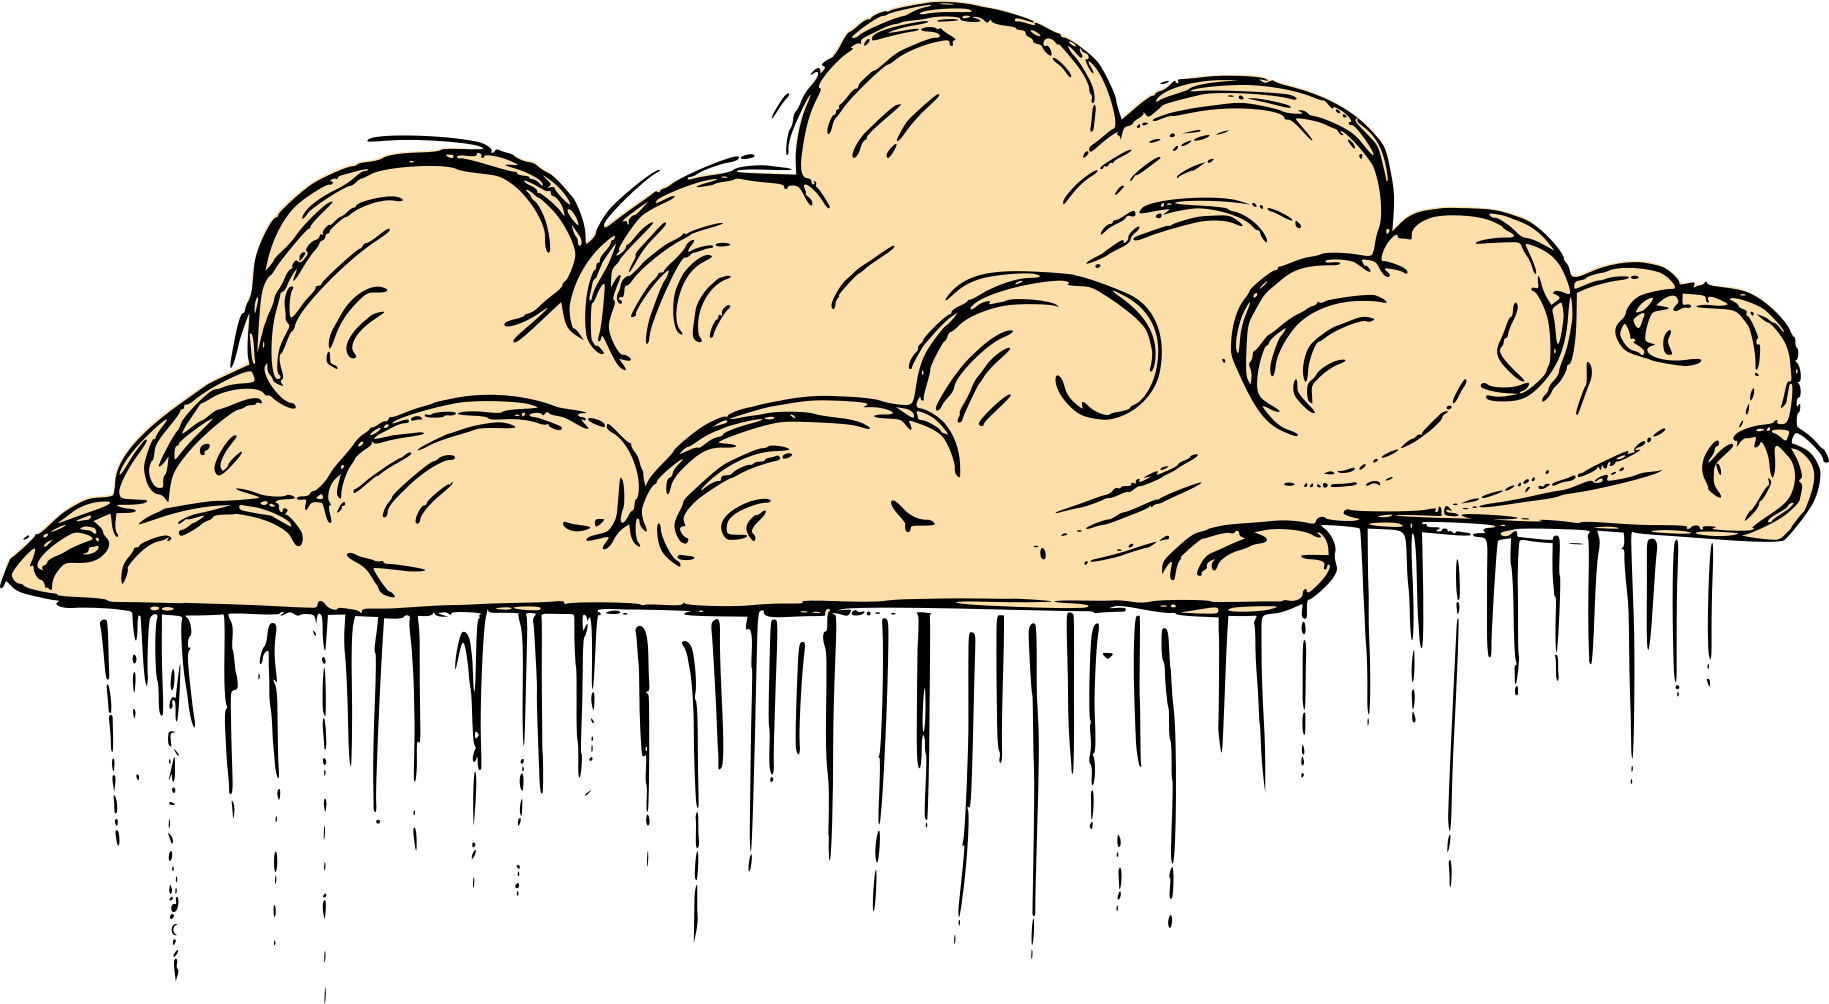 vintage-cloud-drawing-8.png